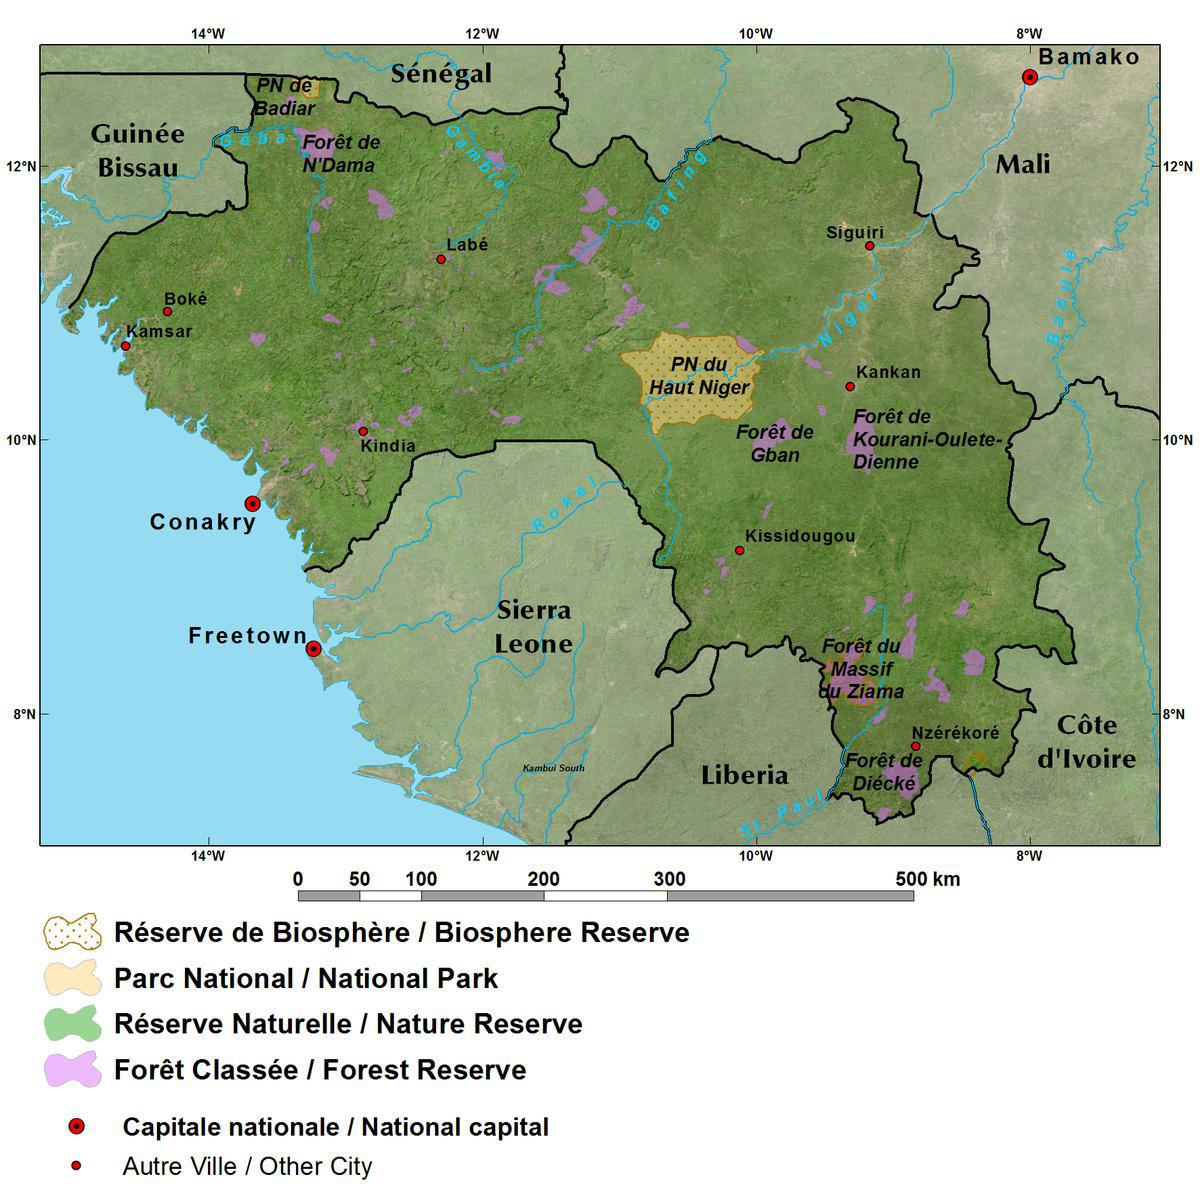 The Republic of Guinea | West Africa